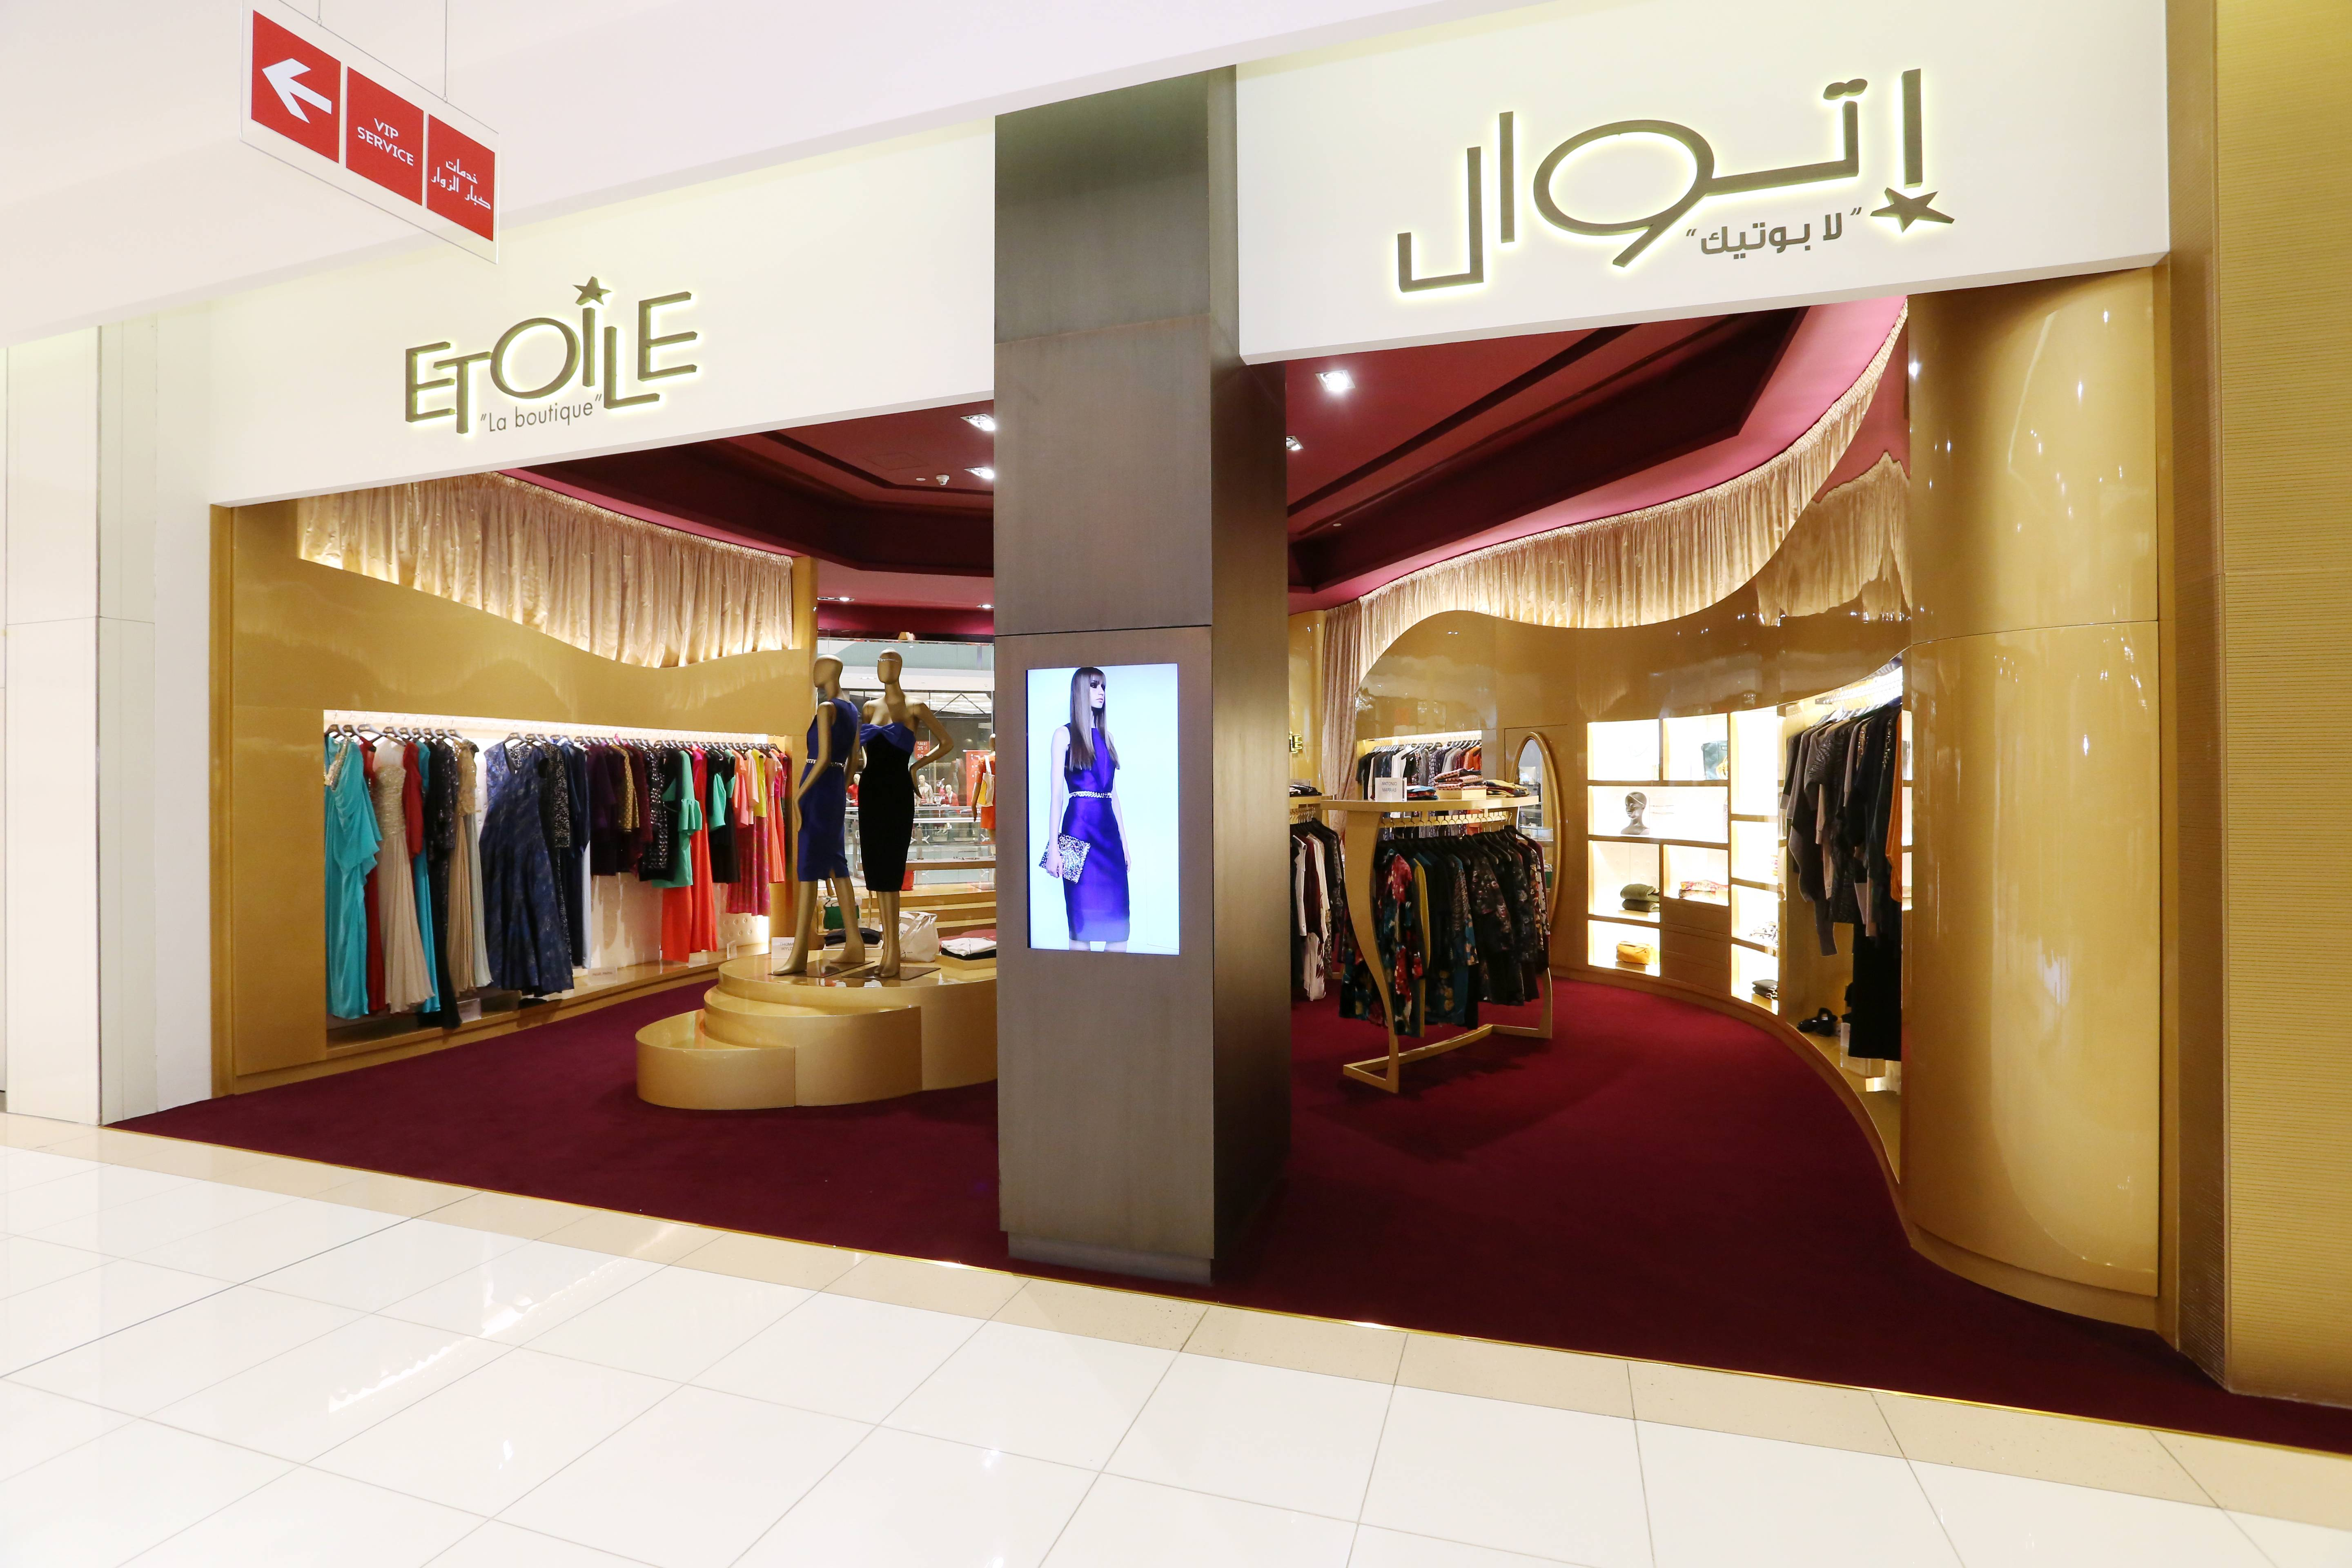 Etoile 39 la boutique 39 opens its first shop in shop in the for Star boutique dubai